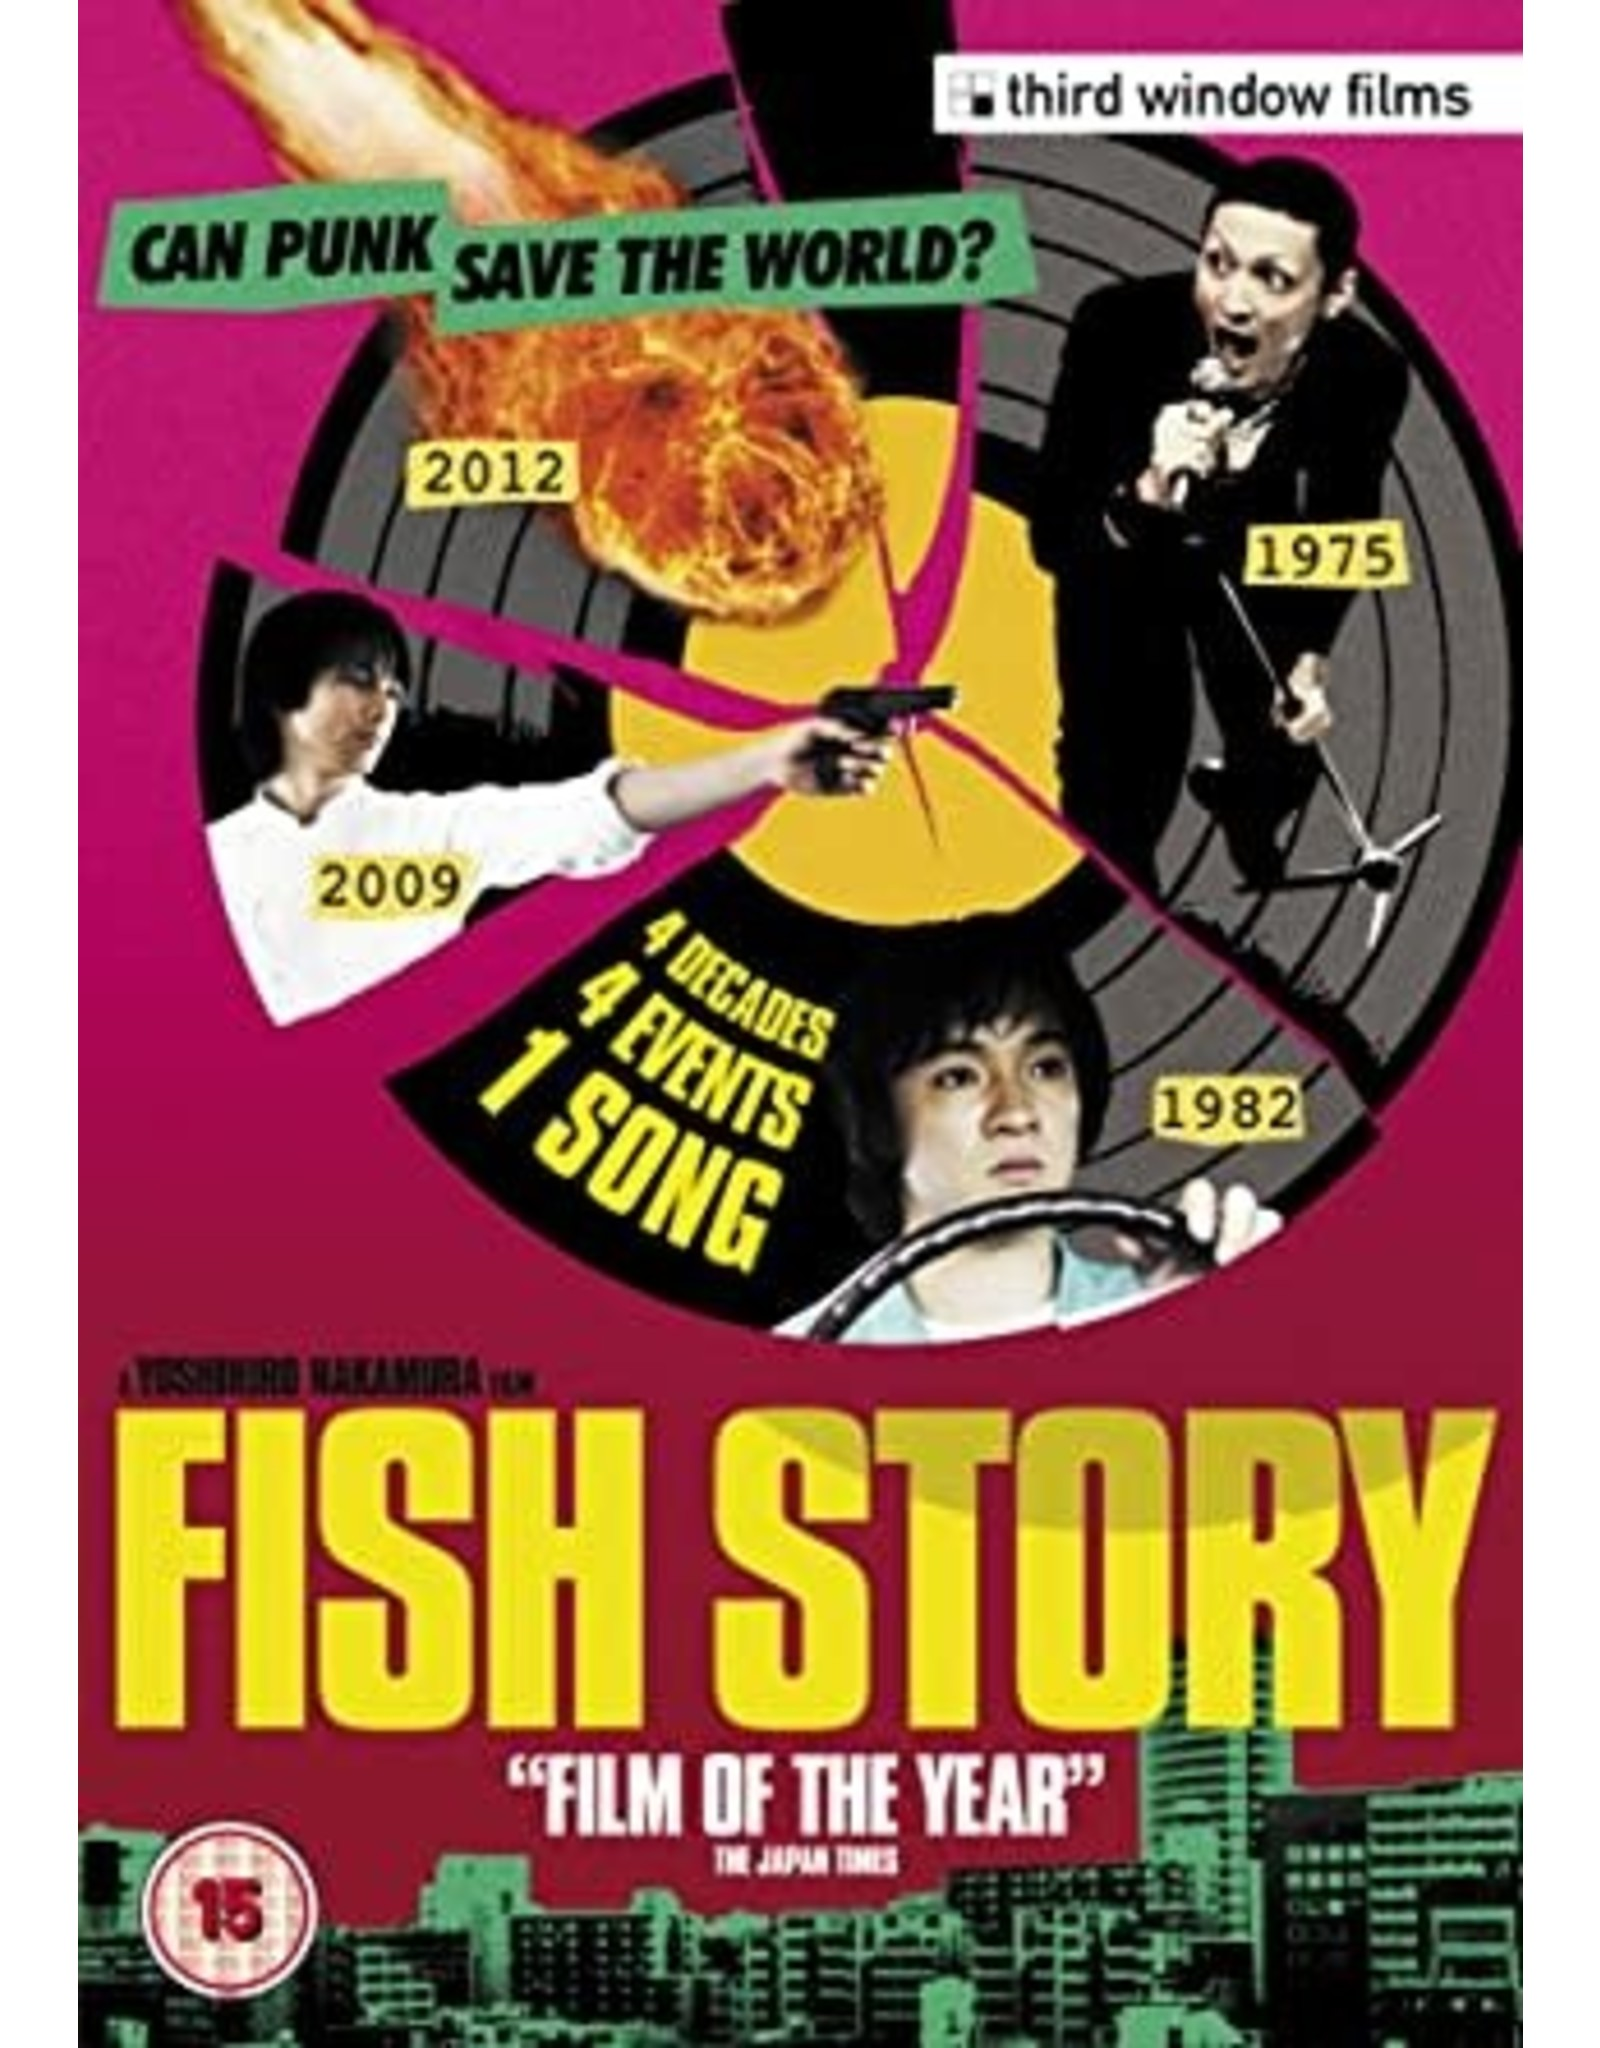 Fish Story - DVD (Original version, English subtitles)